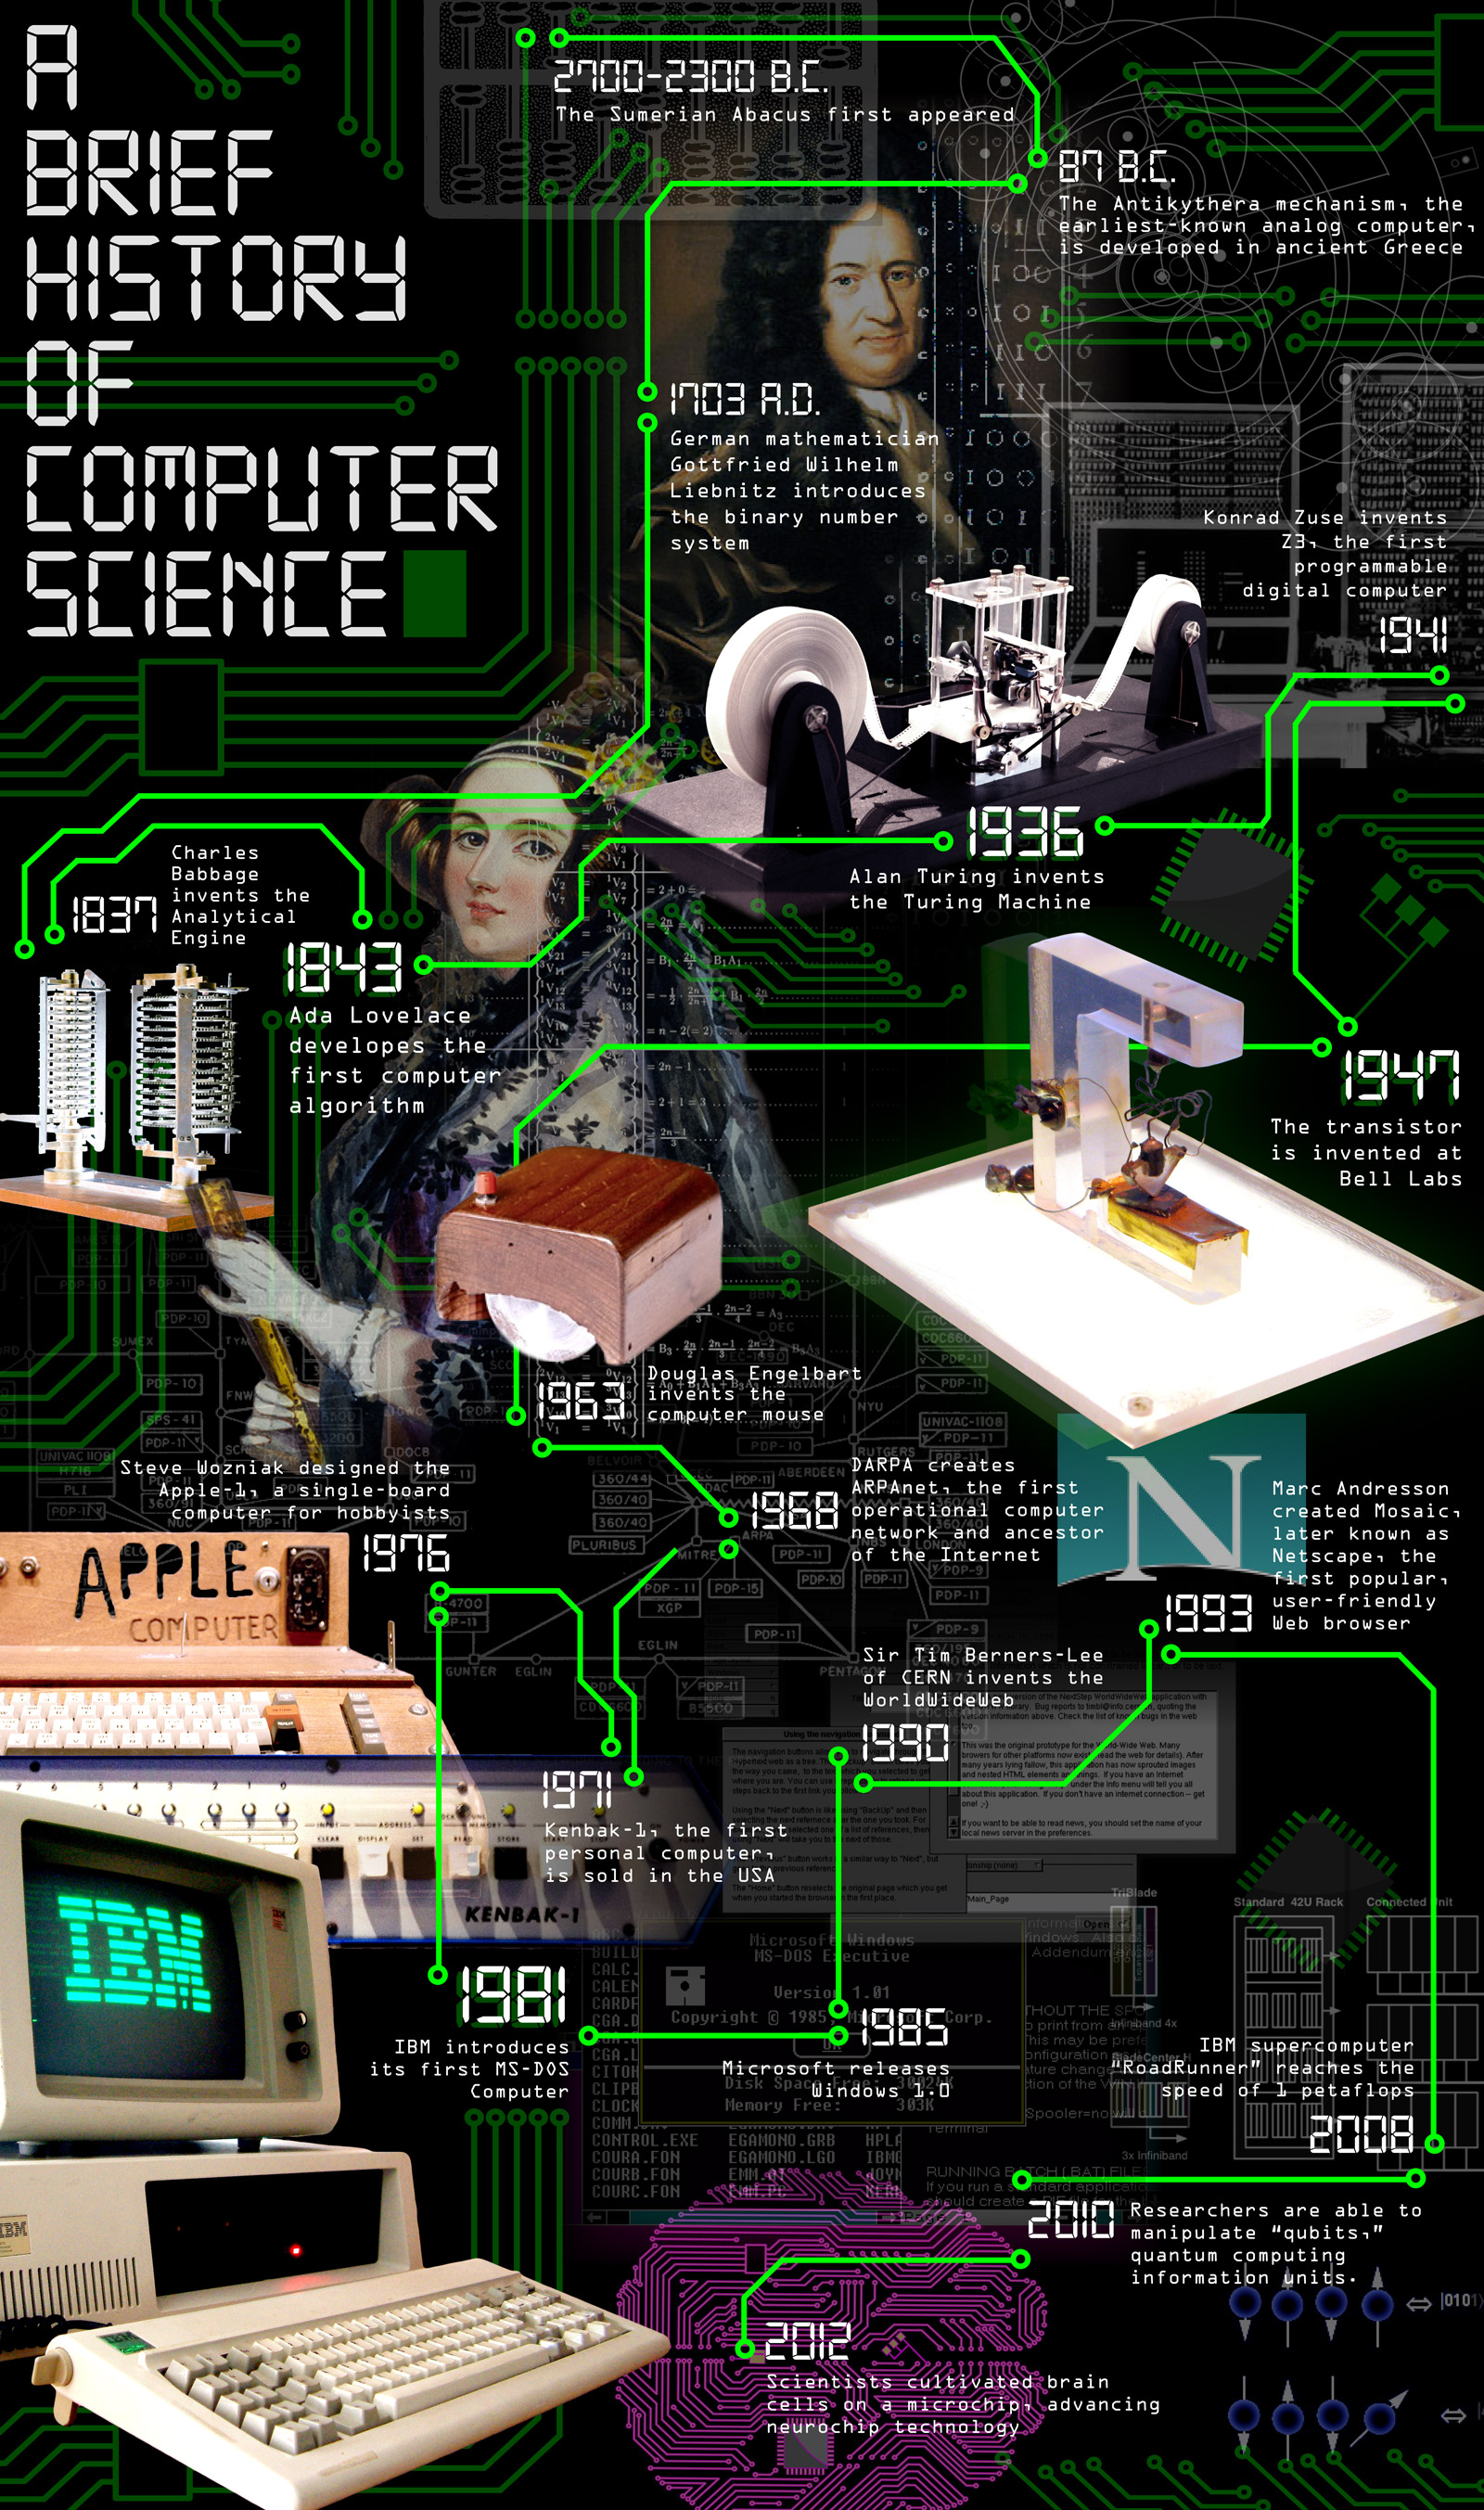 a-brief-history-of-computer-science